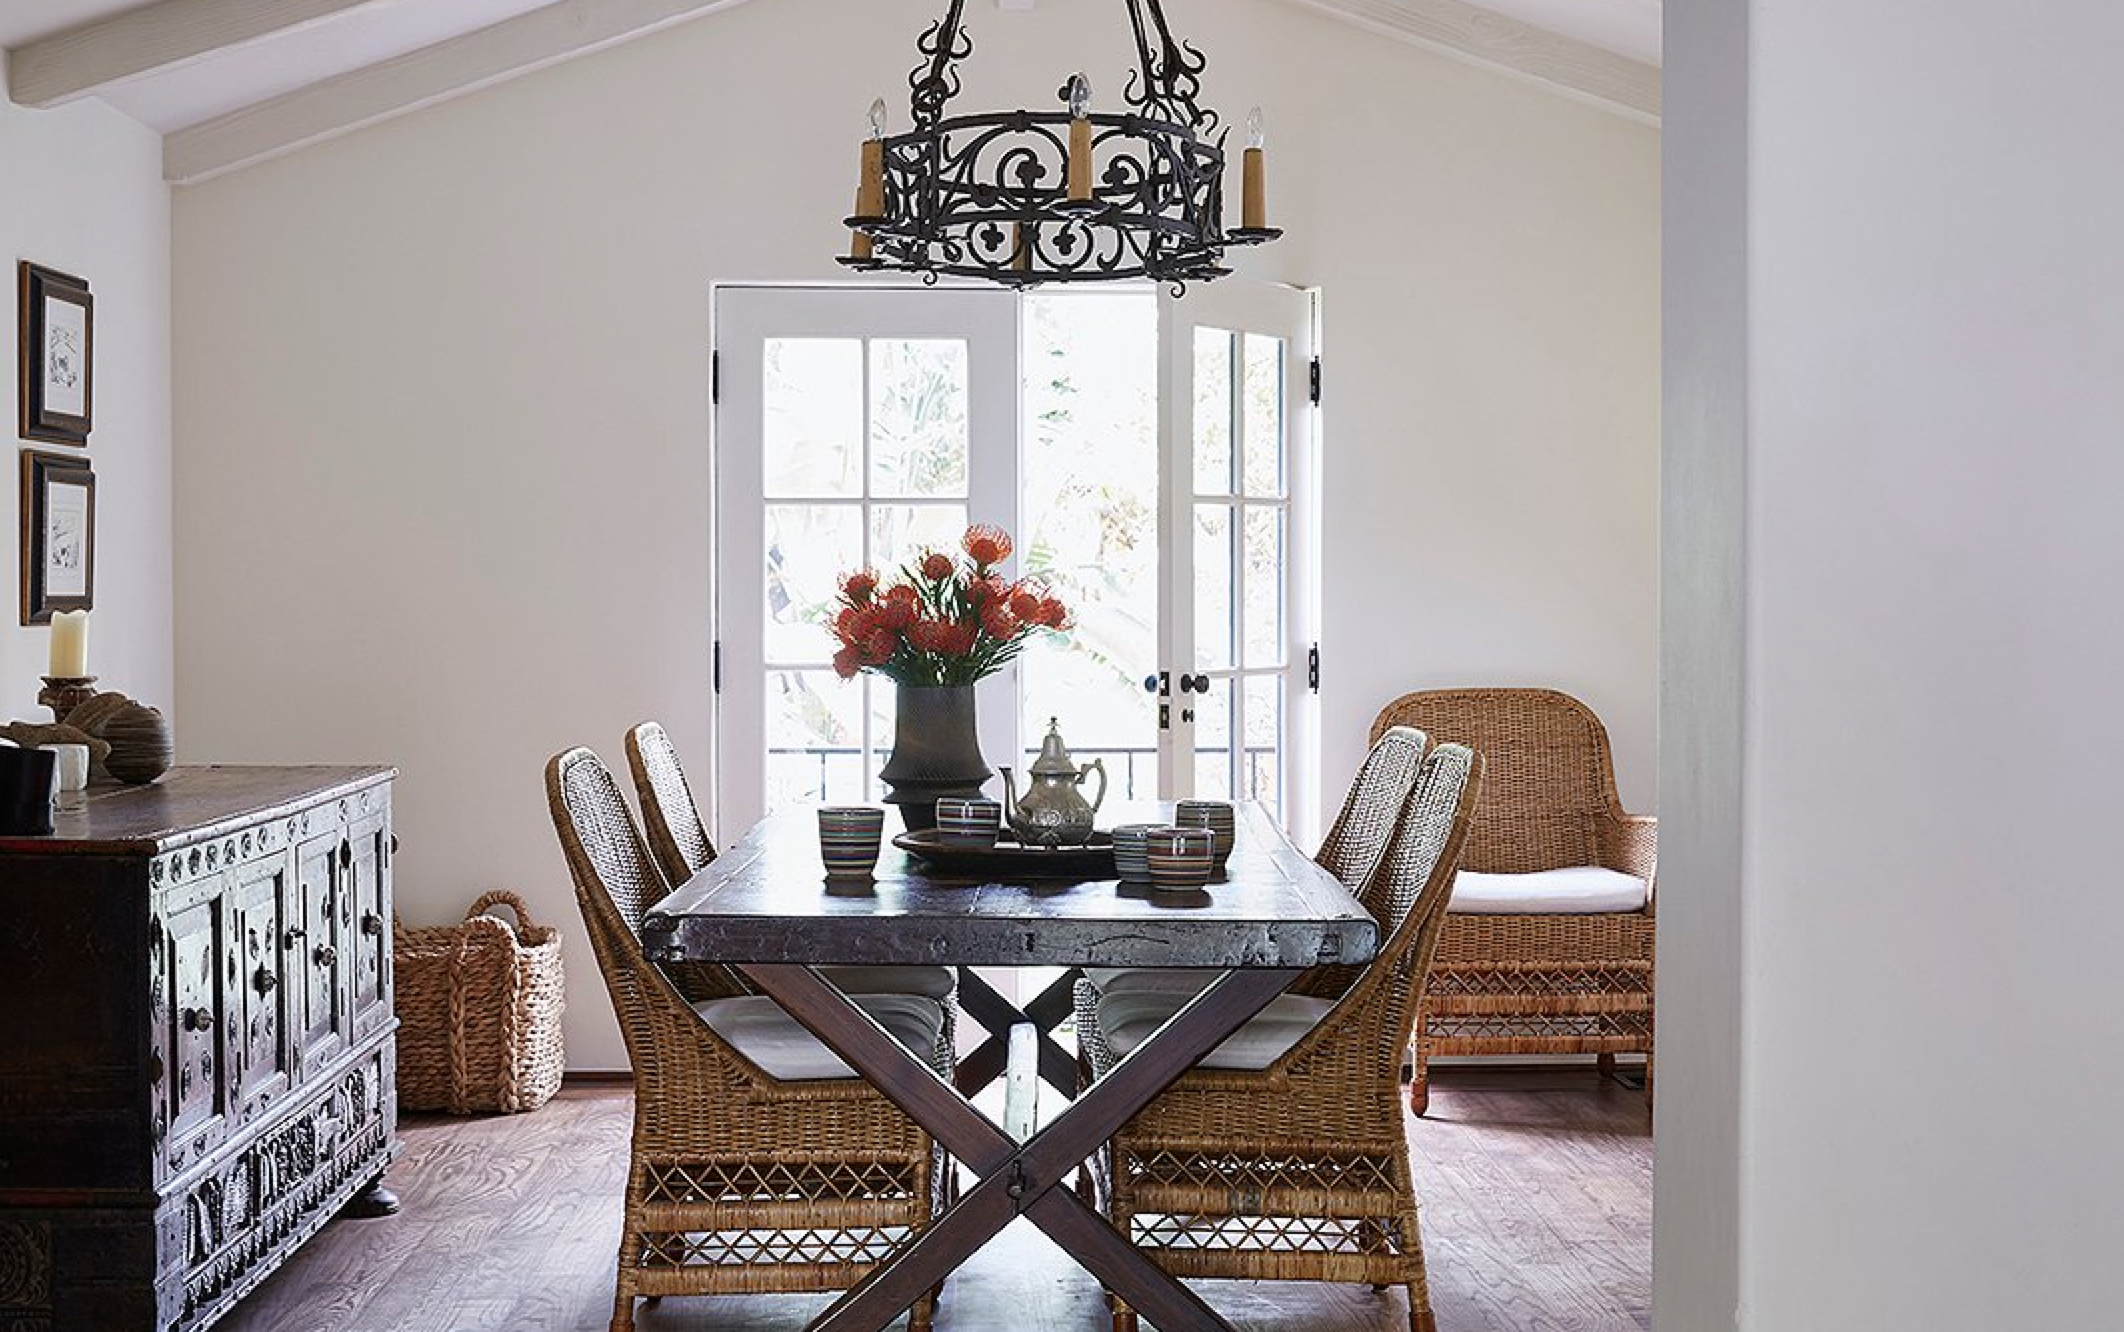 """This is the family table,"" says Kendall. ""We have dinner, the girls do their homework."" It was reimagined from an antique Spanish door. The rattan chairs add airy space. A vase by potter Miri Mara sits near striped cups by a local artisan."